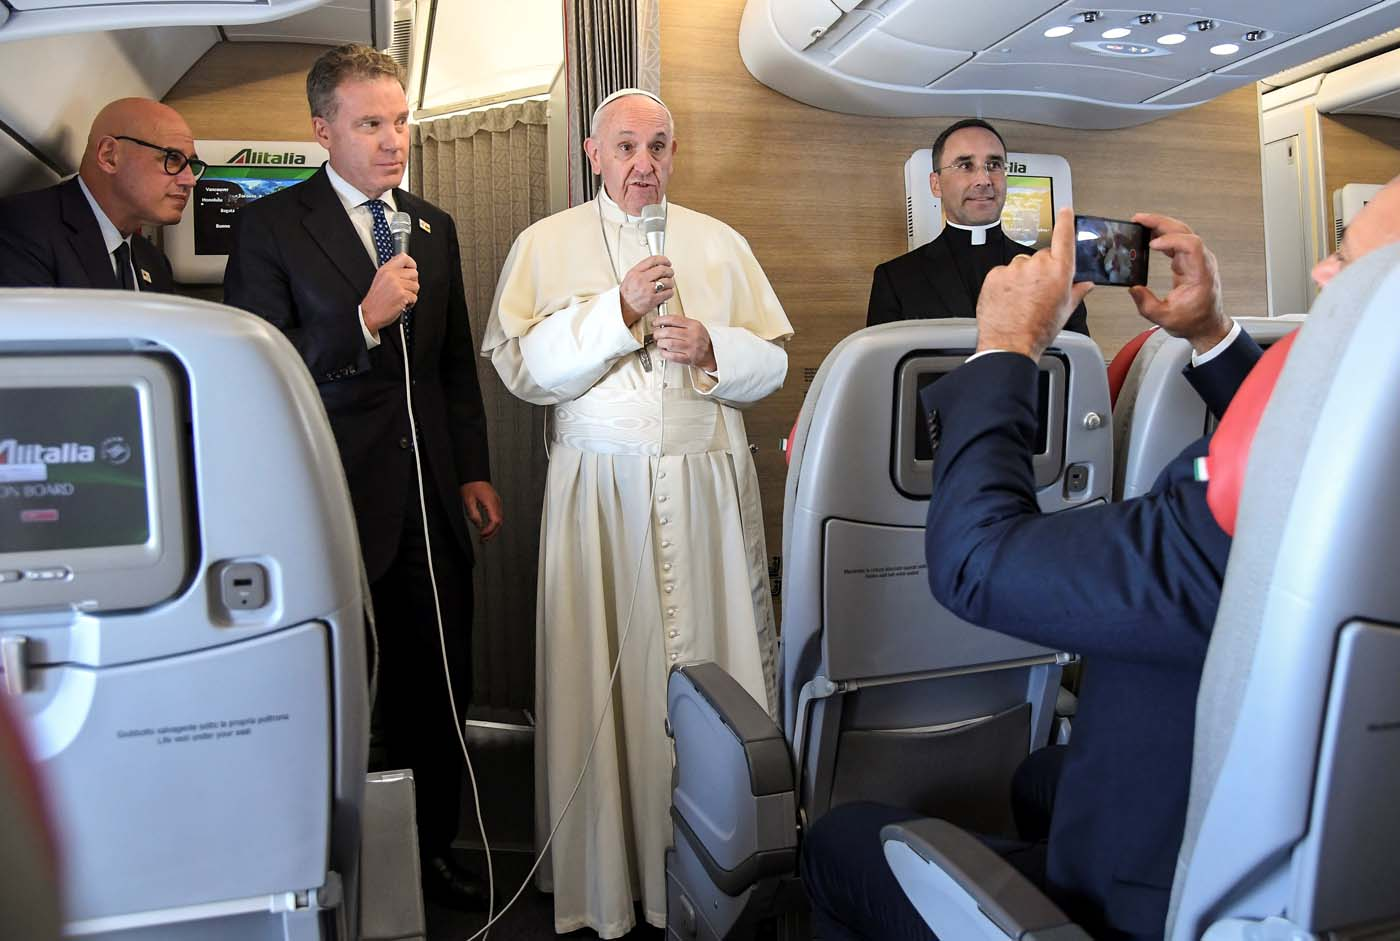 Pope Francis talks aboard a plane for his 5-days pastoral visit to Colombia at Fiumicino international airport in Rome, Italy, September 6, 2017. REUTERS/Alessandro Di Meo/Pool